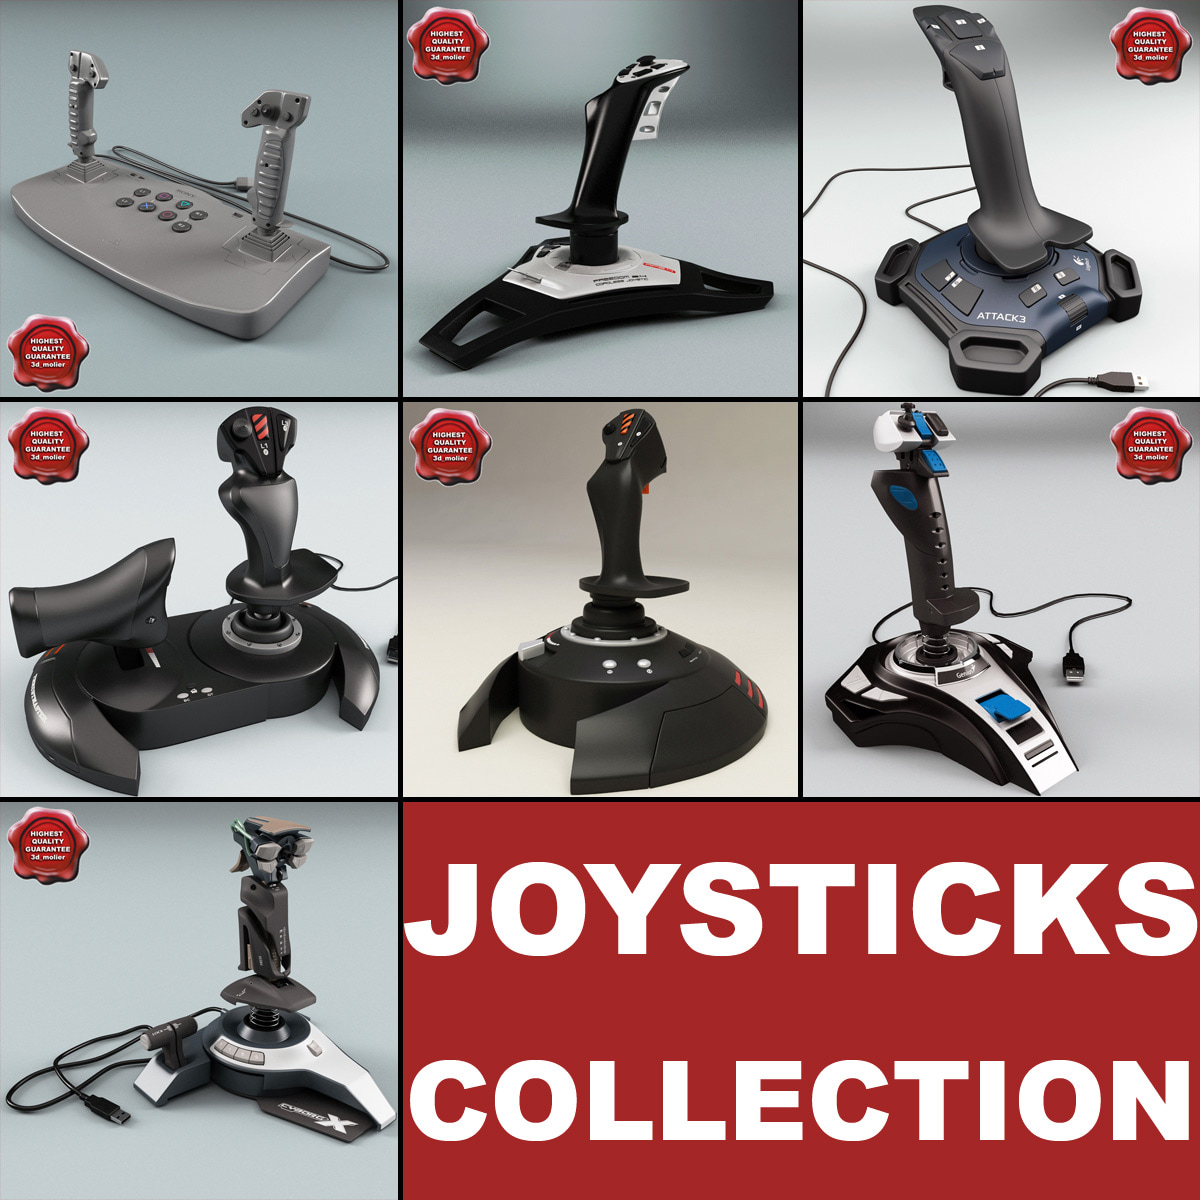 Joysticks_Collection_V3_000.jpg